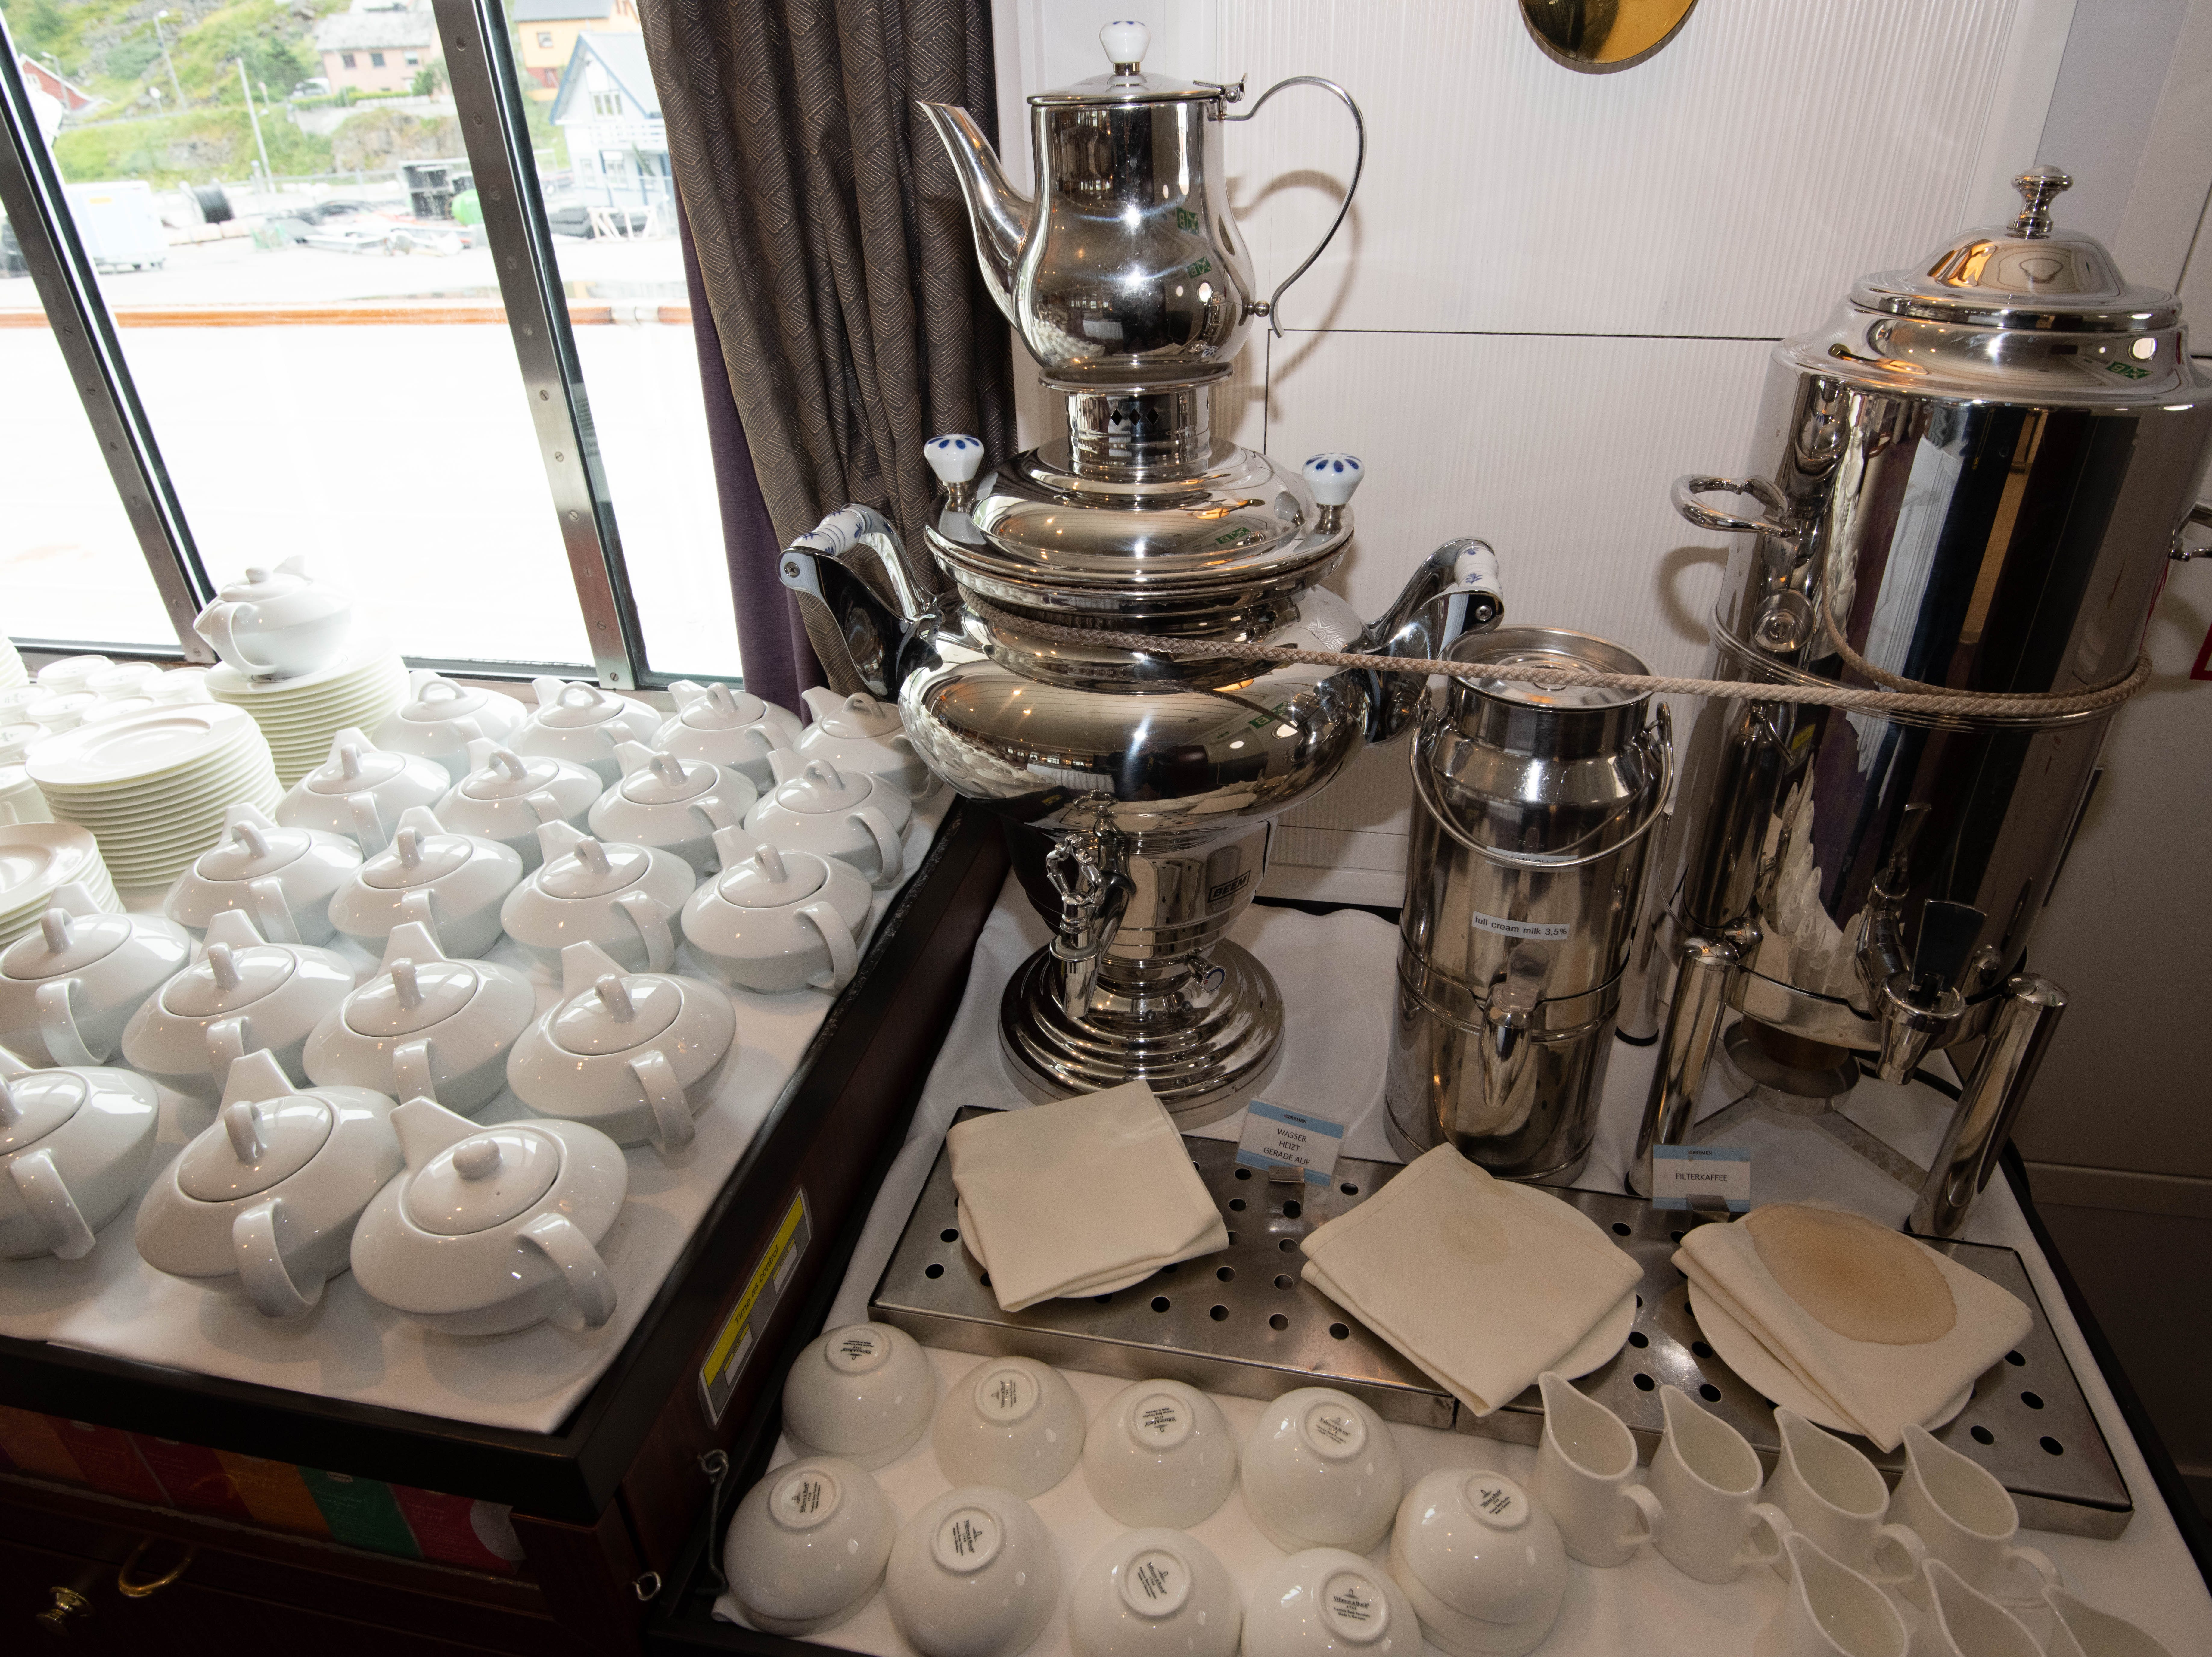 Hot coffee and tea are available around-the-clock in the Bremen Club lounge.